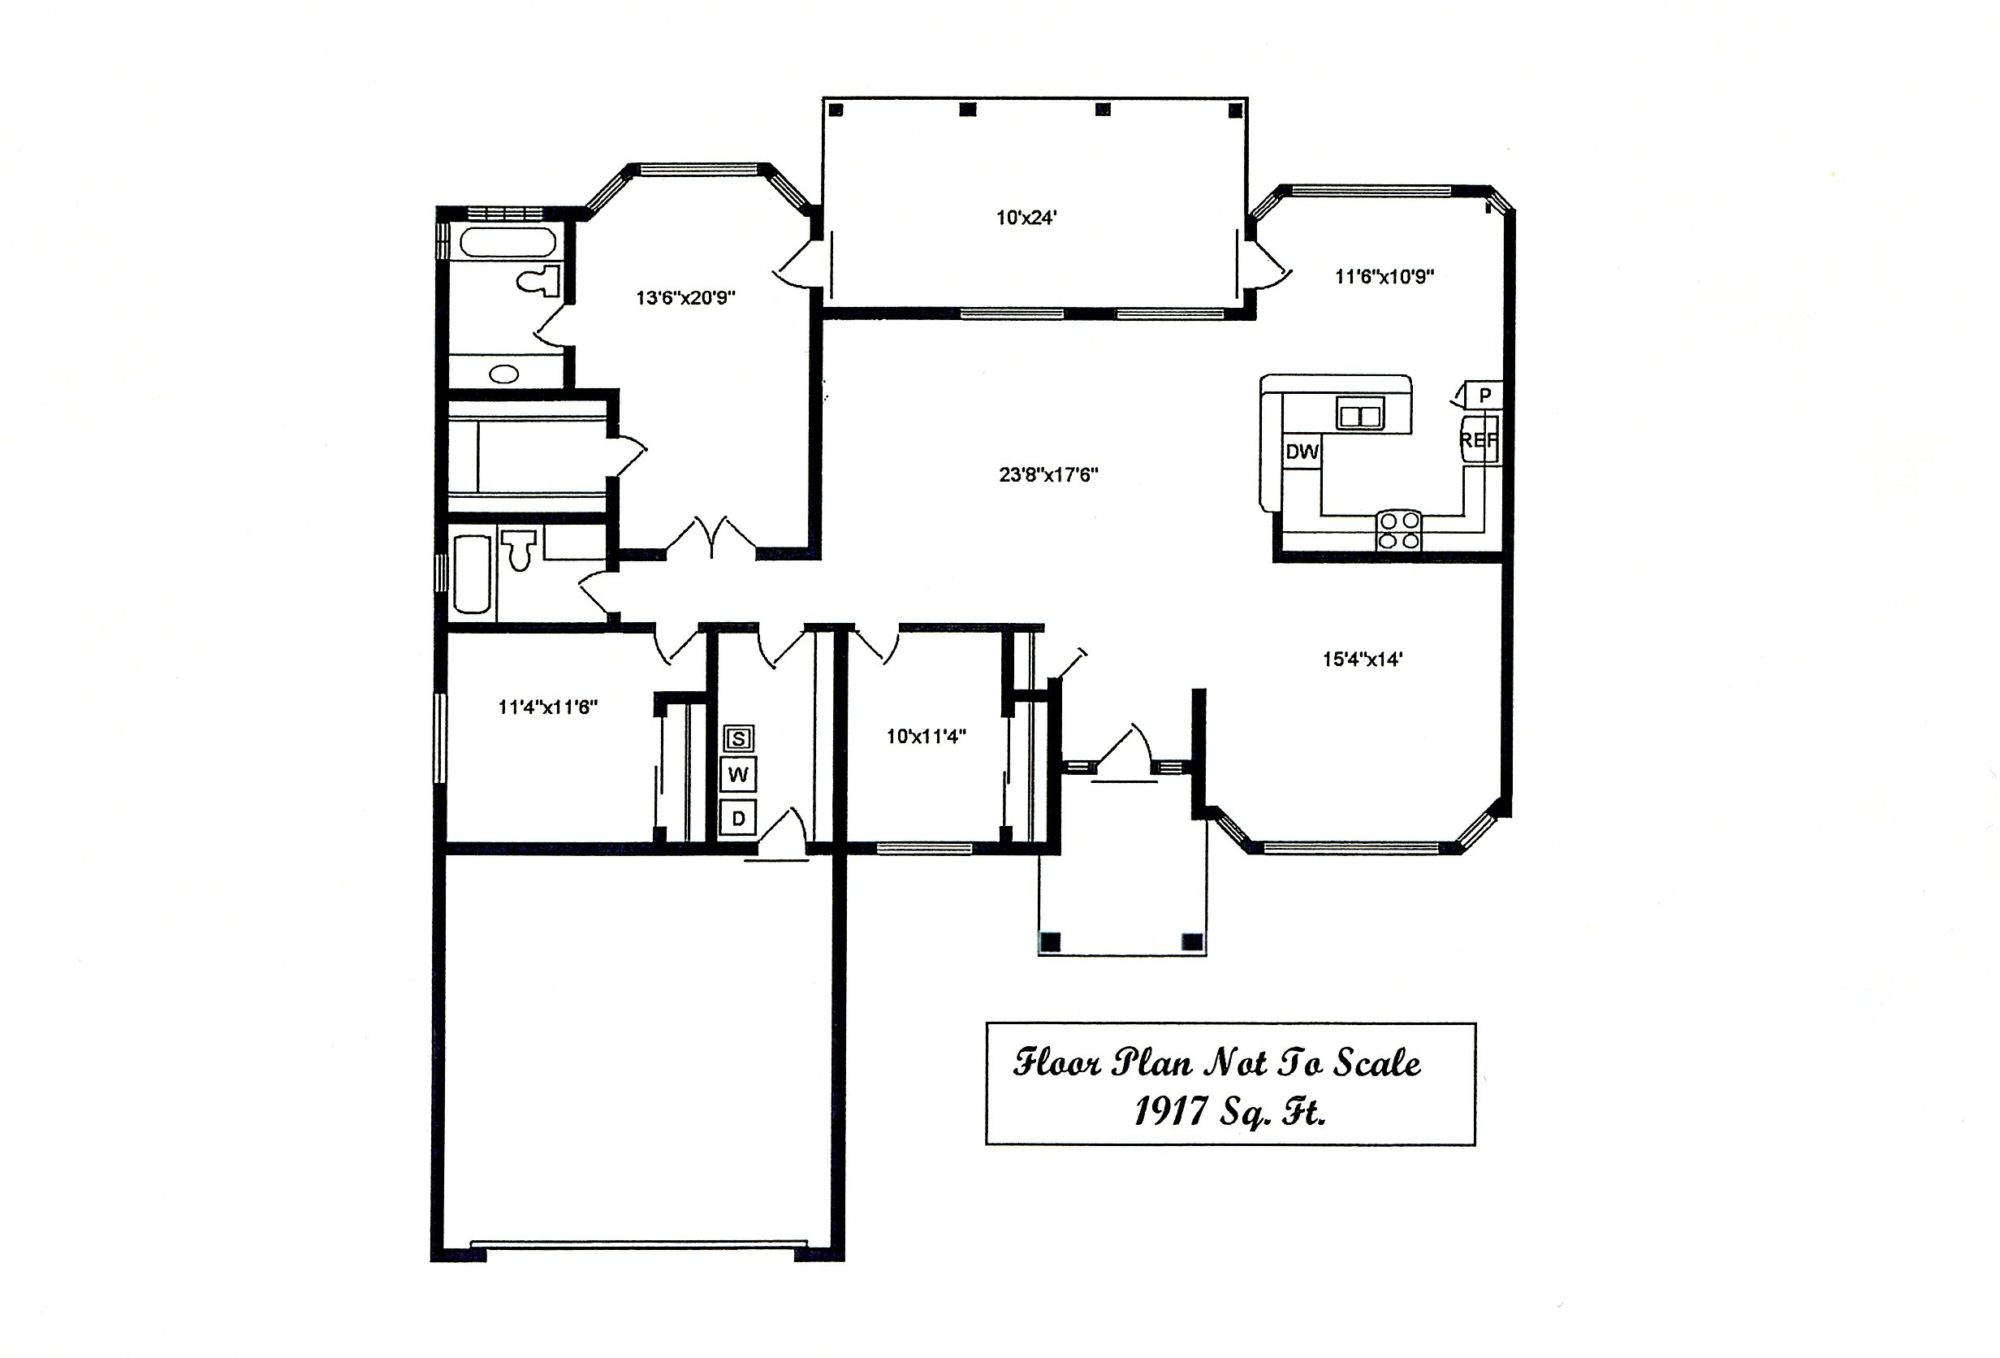 Sierra Remodeling Custom Home Model 1917 floor plan